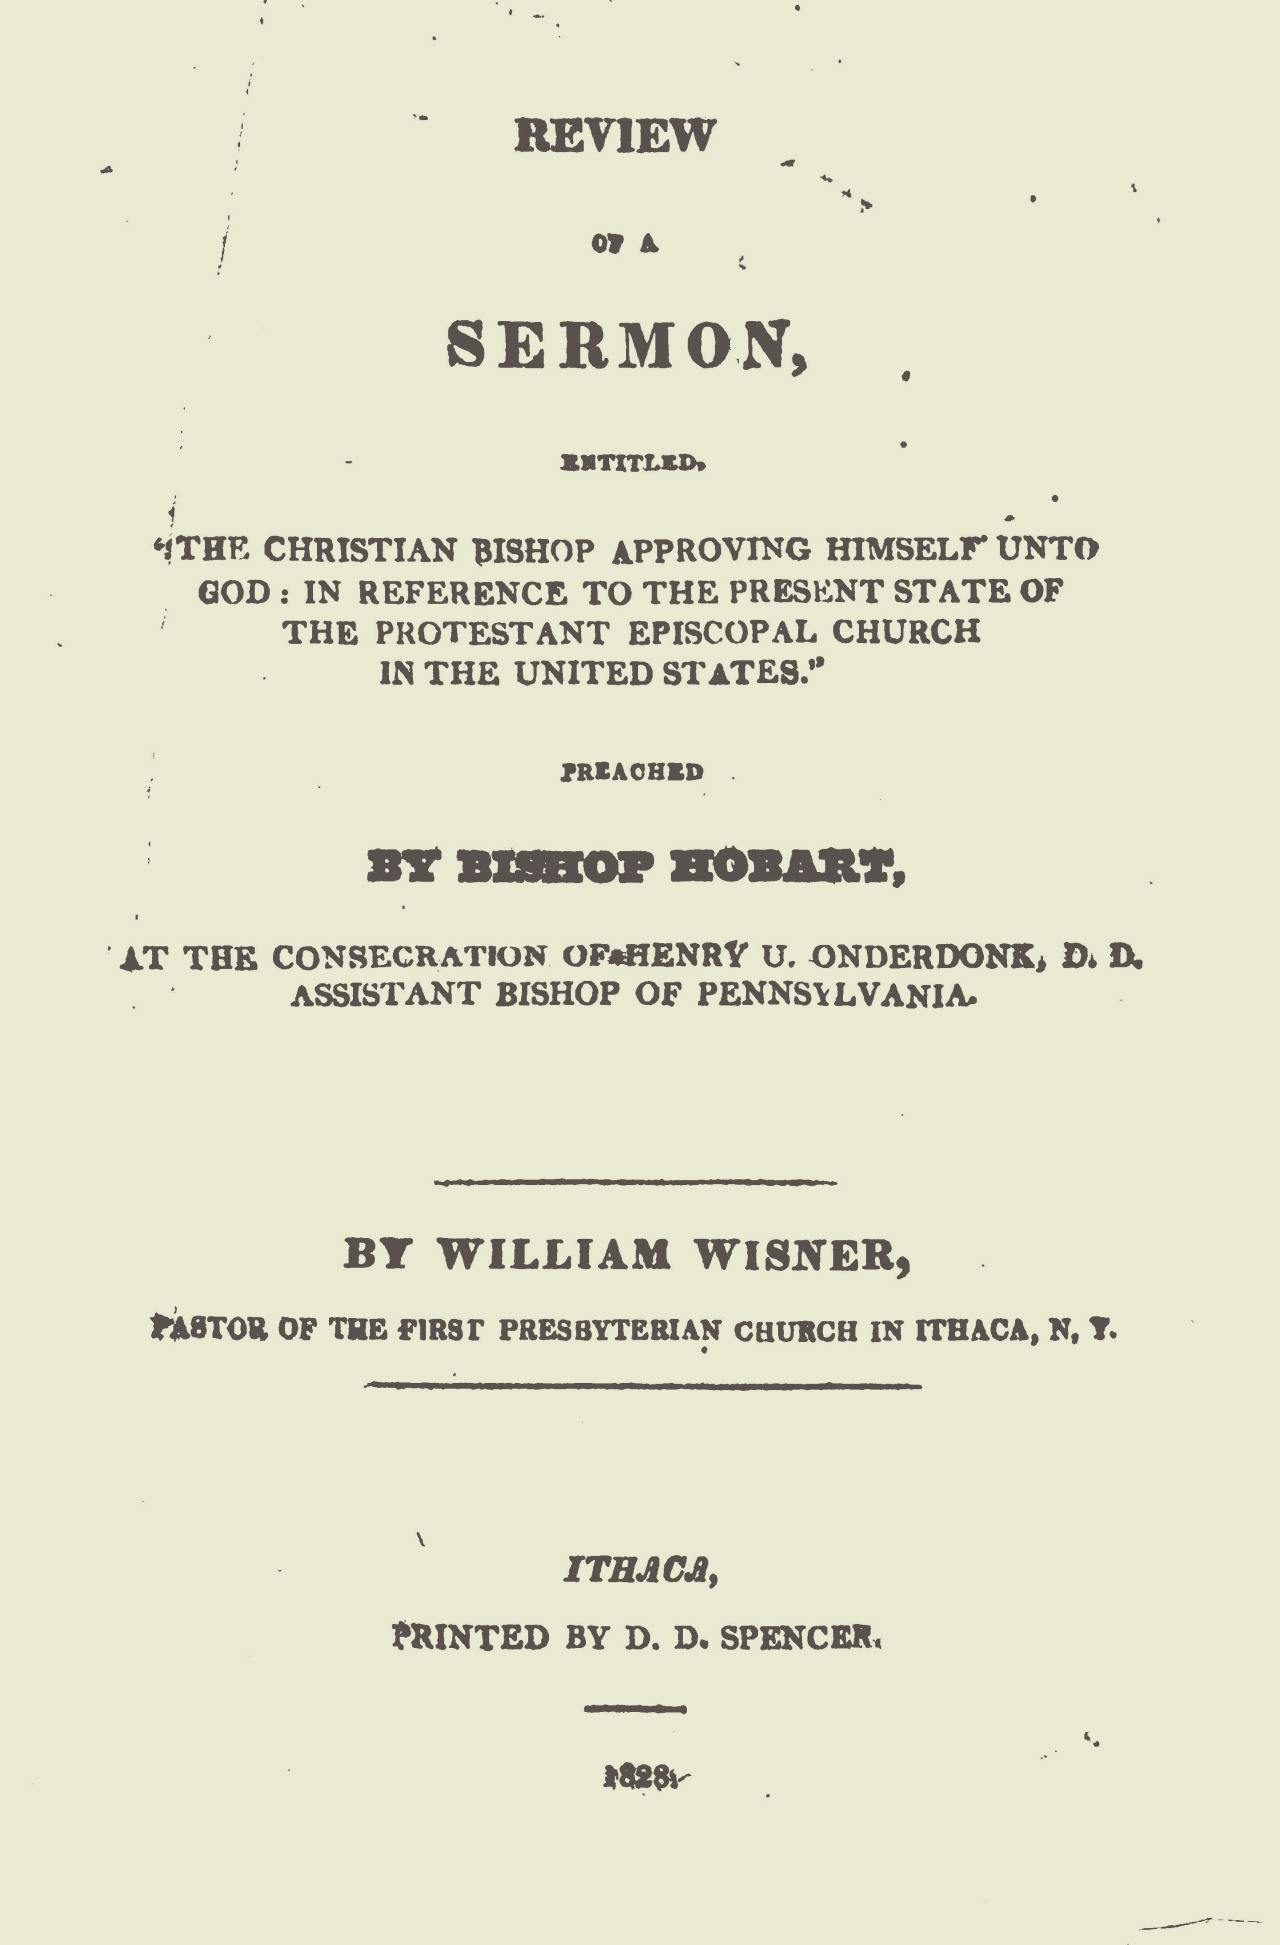 Wisner, William, Review of a Sermon Title Page.jpg